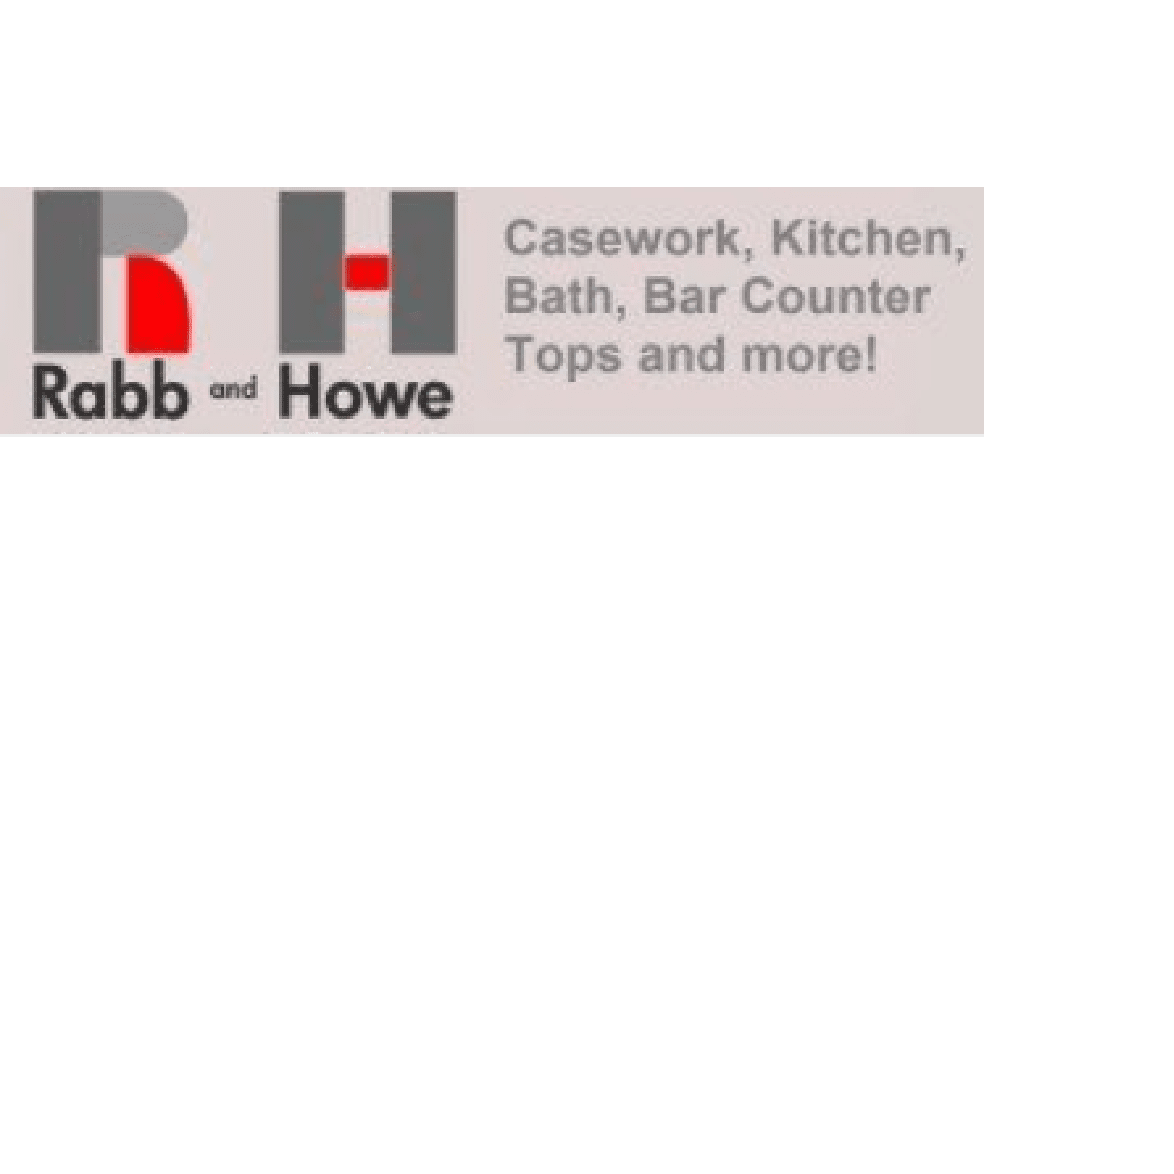 Rabb and Howe Cabinet Top Company